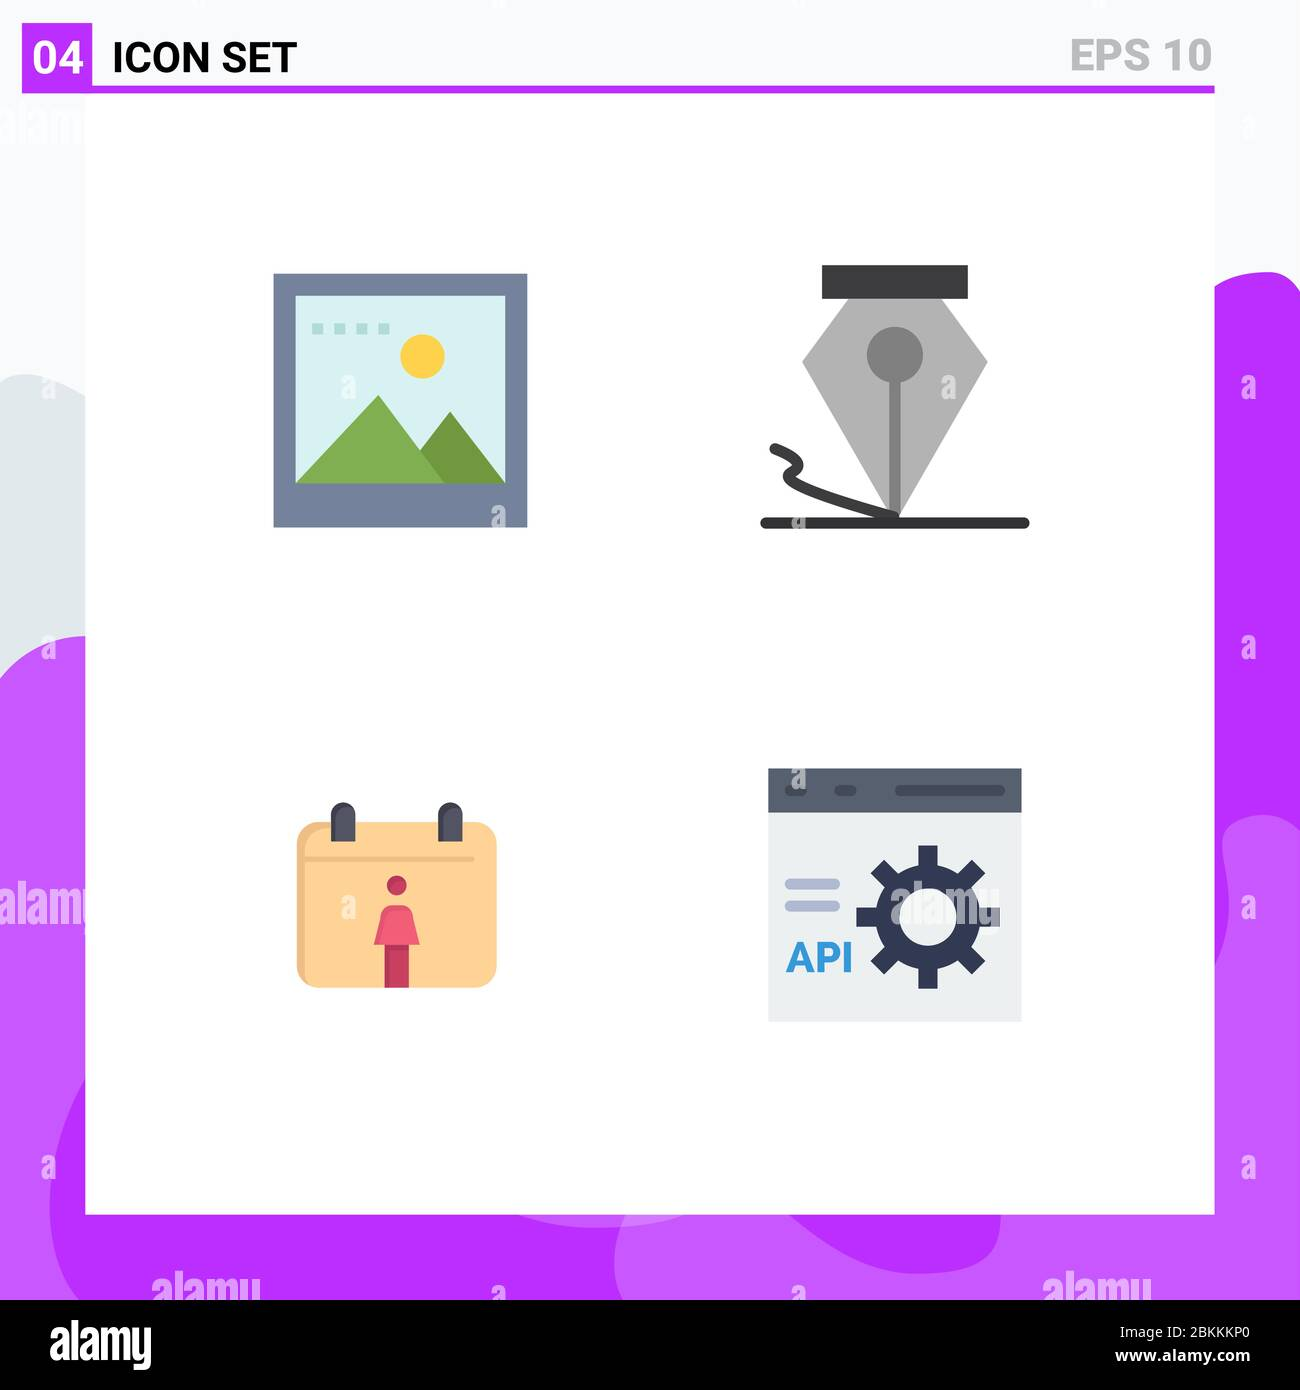 4 User Interface Flat Icon Pack of modern Signs and Symbols of image, coding, freeform, calendar, development Editable Vector Design Elements Stock Vector